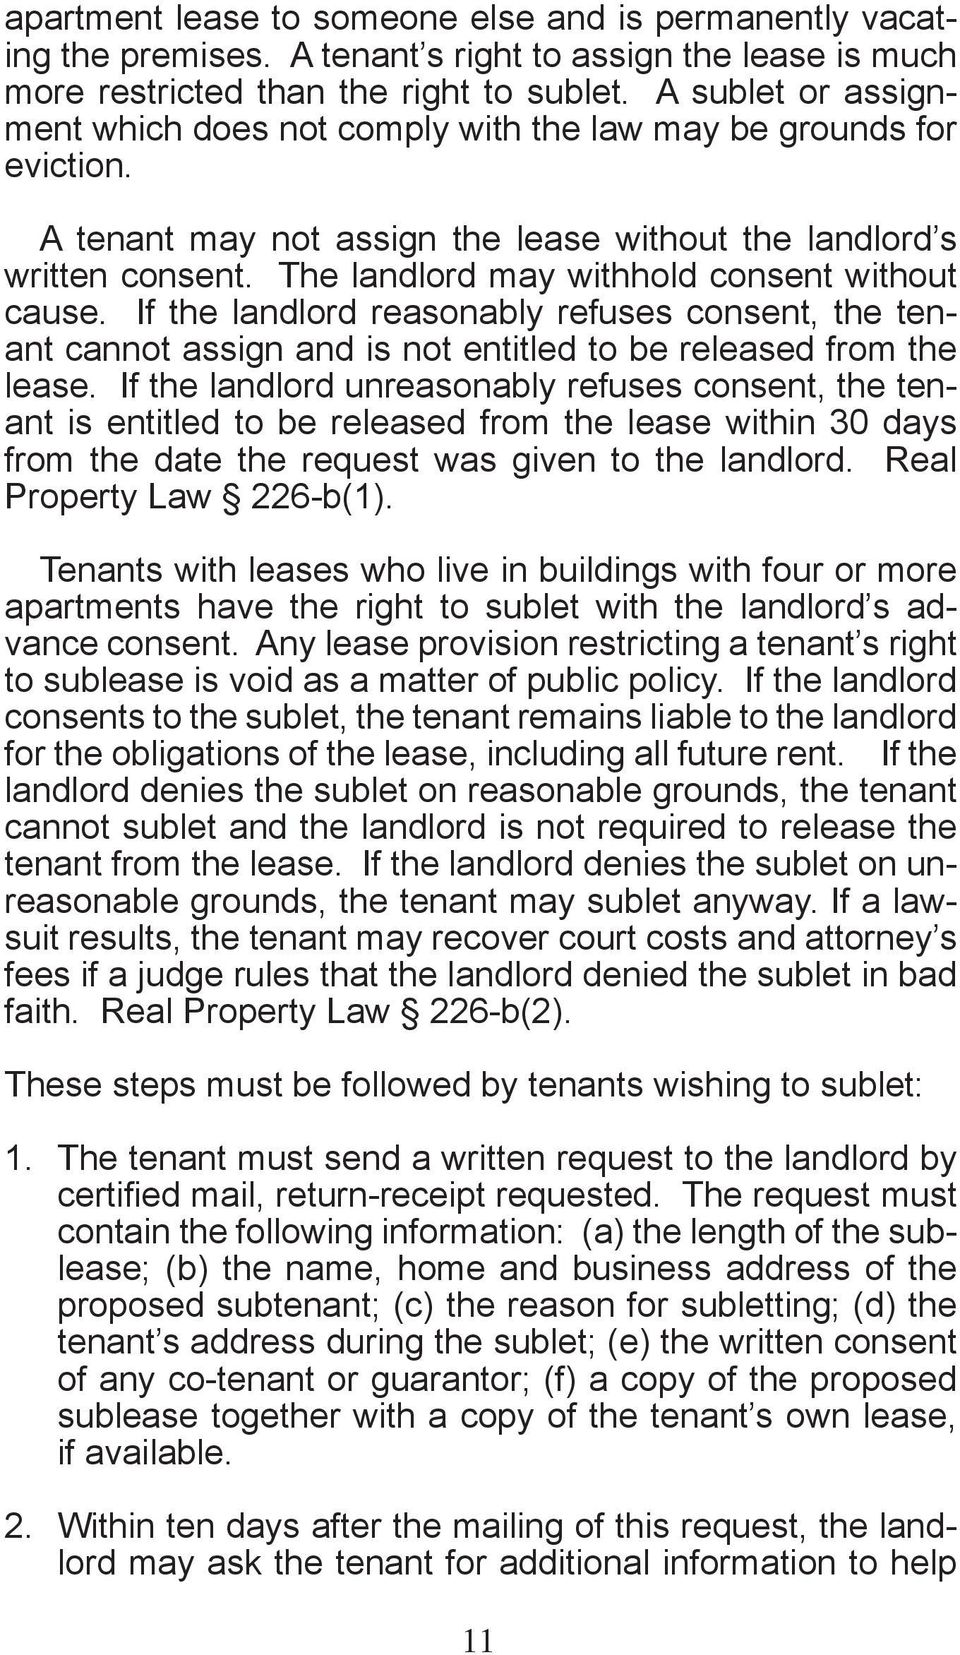 The landlord may withhold consent without cause. If the landlord reasonably refuses consent, the tenant cannot assign and is not entitled to be released from the lease.